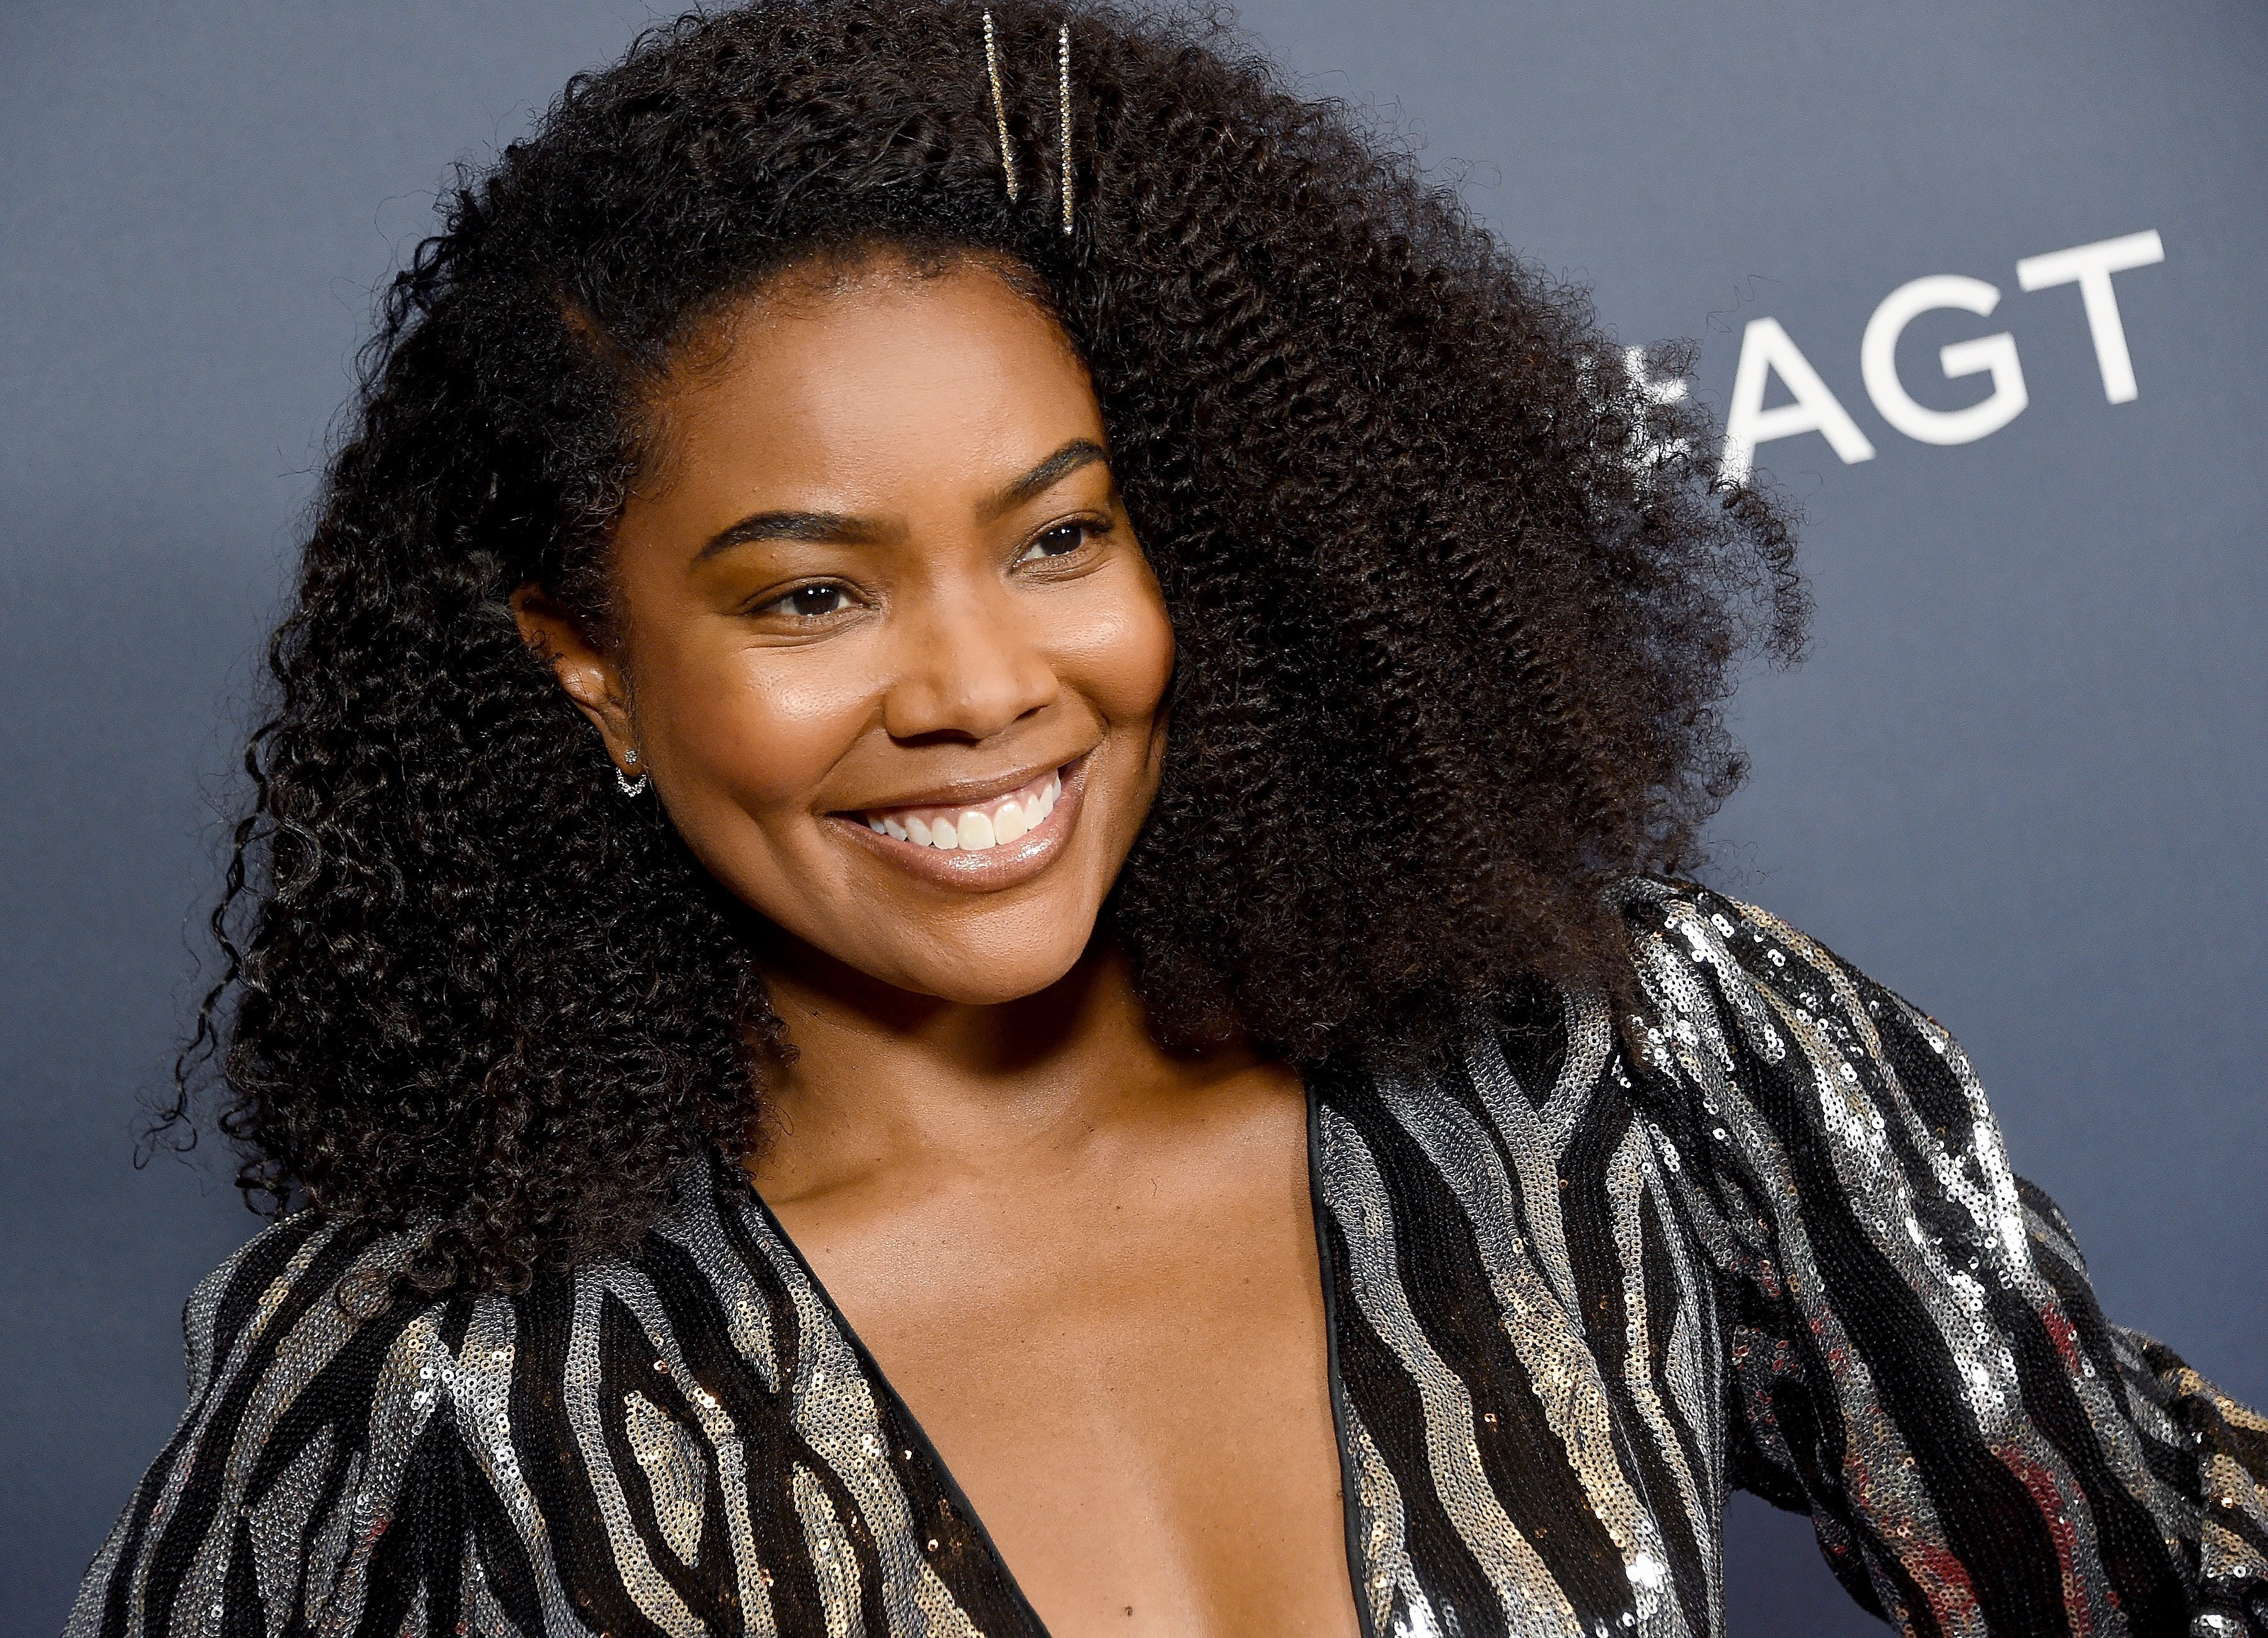 """Gabrielle Union at the red carpet for the live show of """"America's Got Talent"""" on September 10, 2019. 